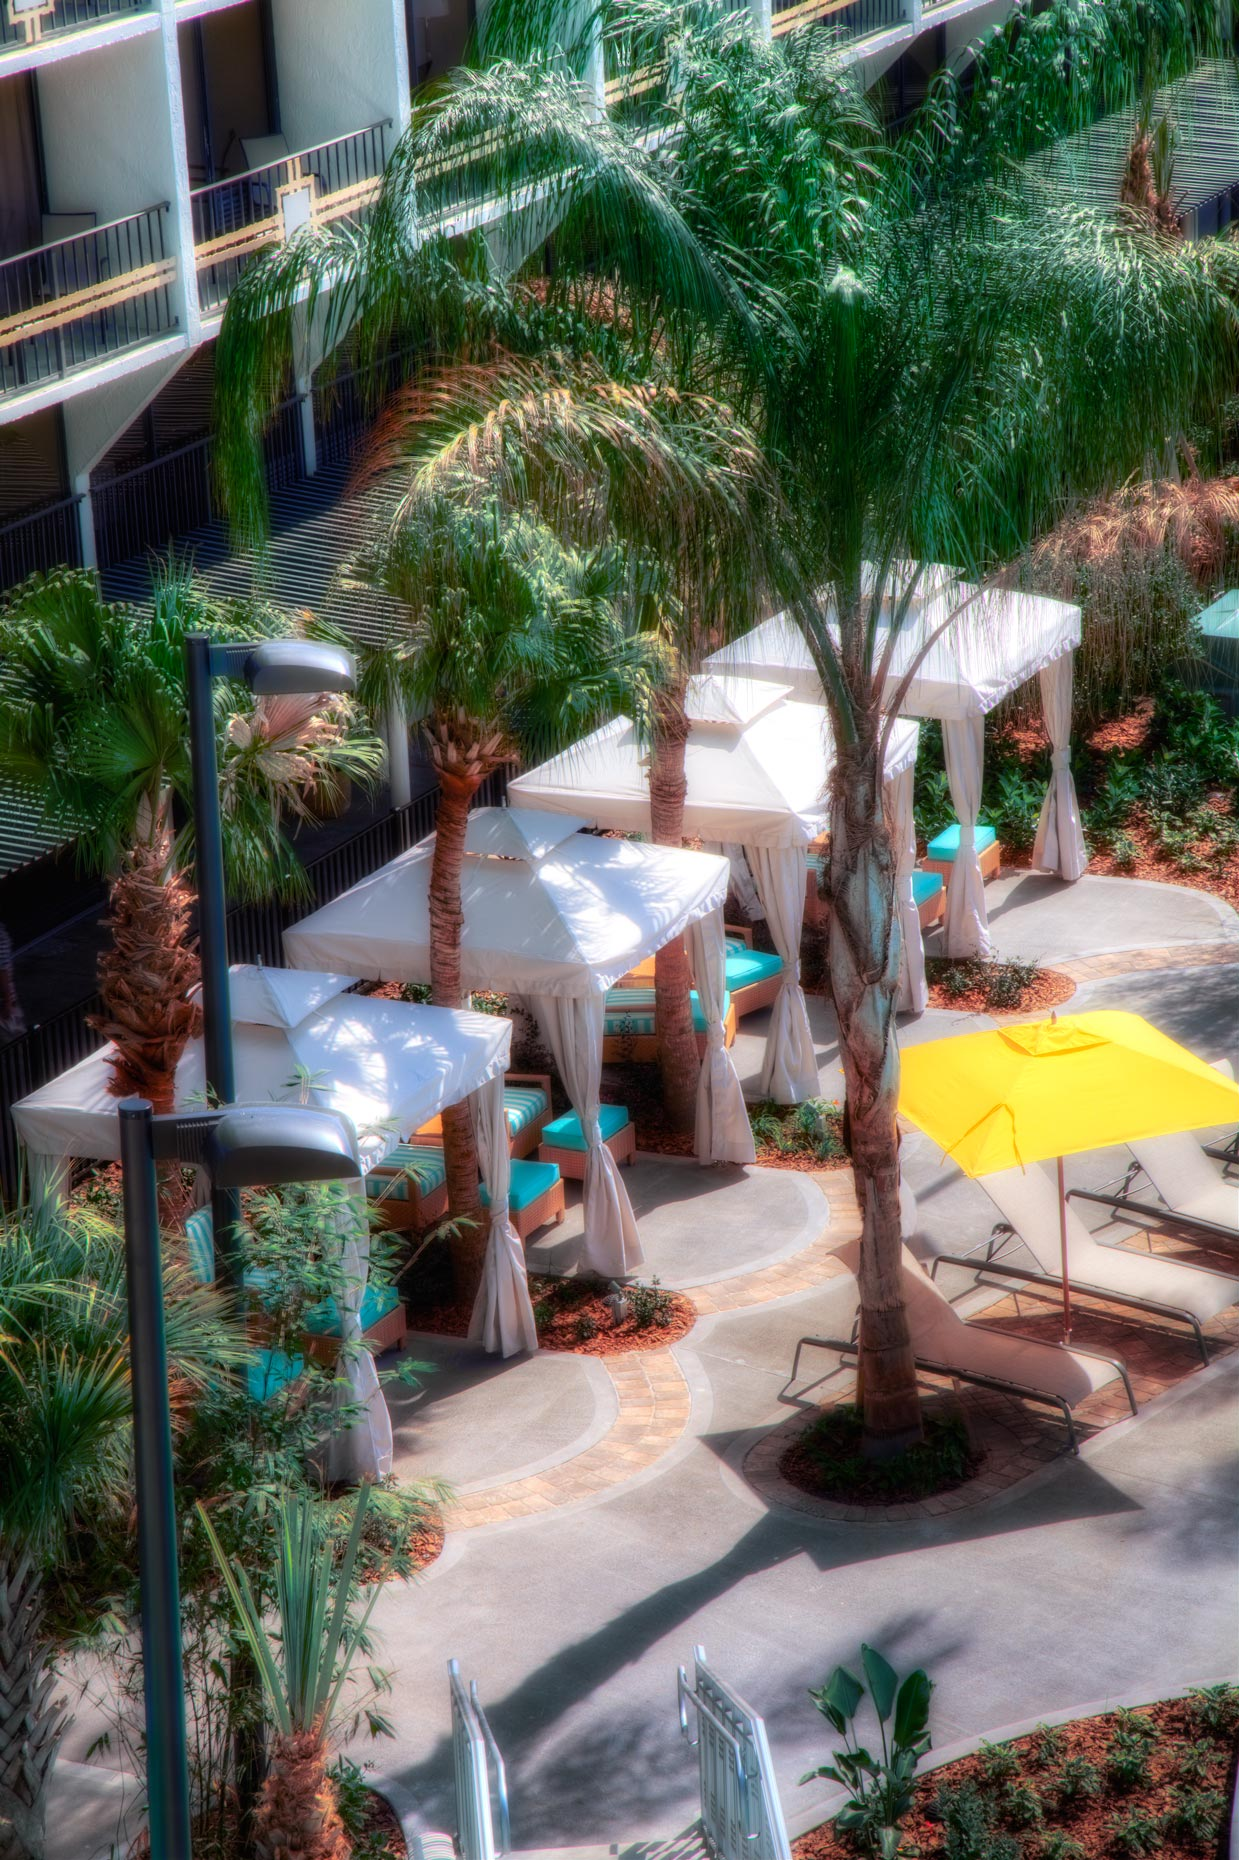 Hotel & Resort Photography | Sheraton Hotel Orlando Pool Cabana